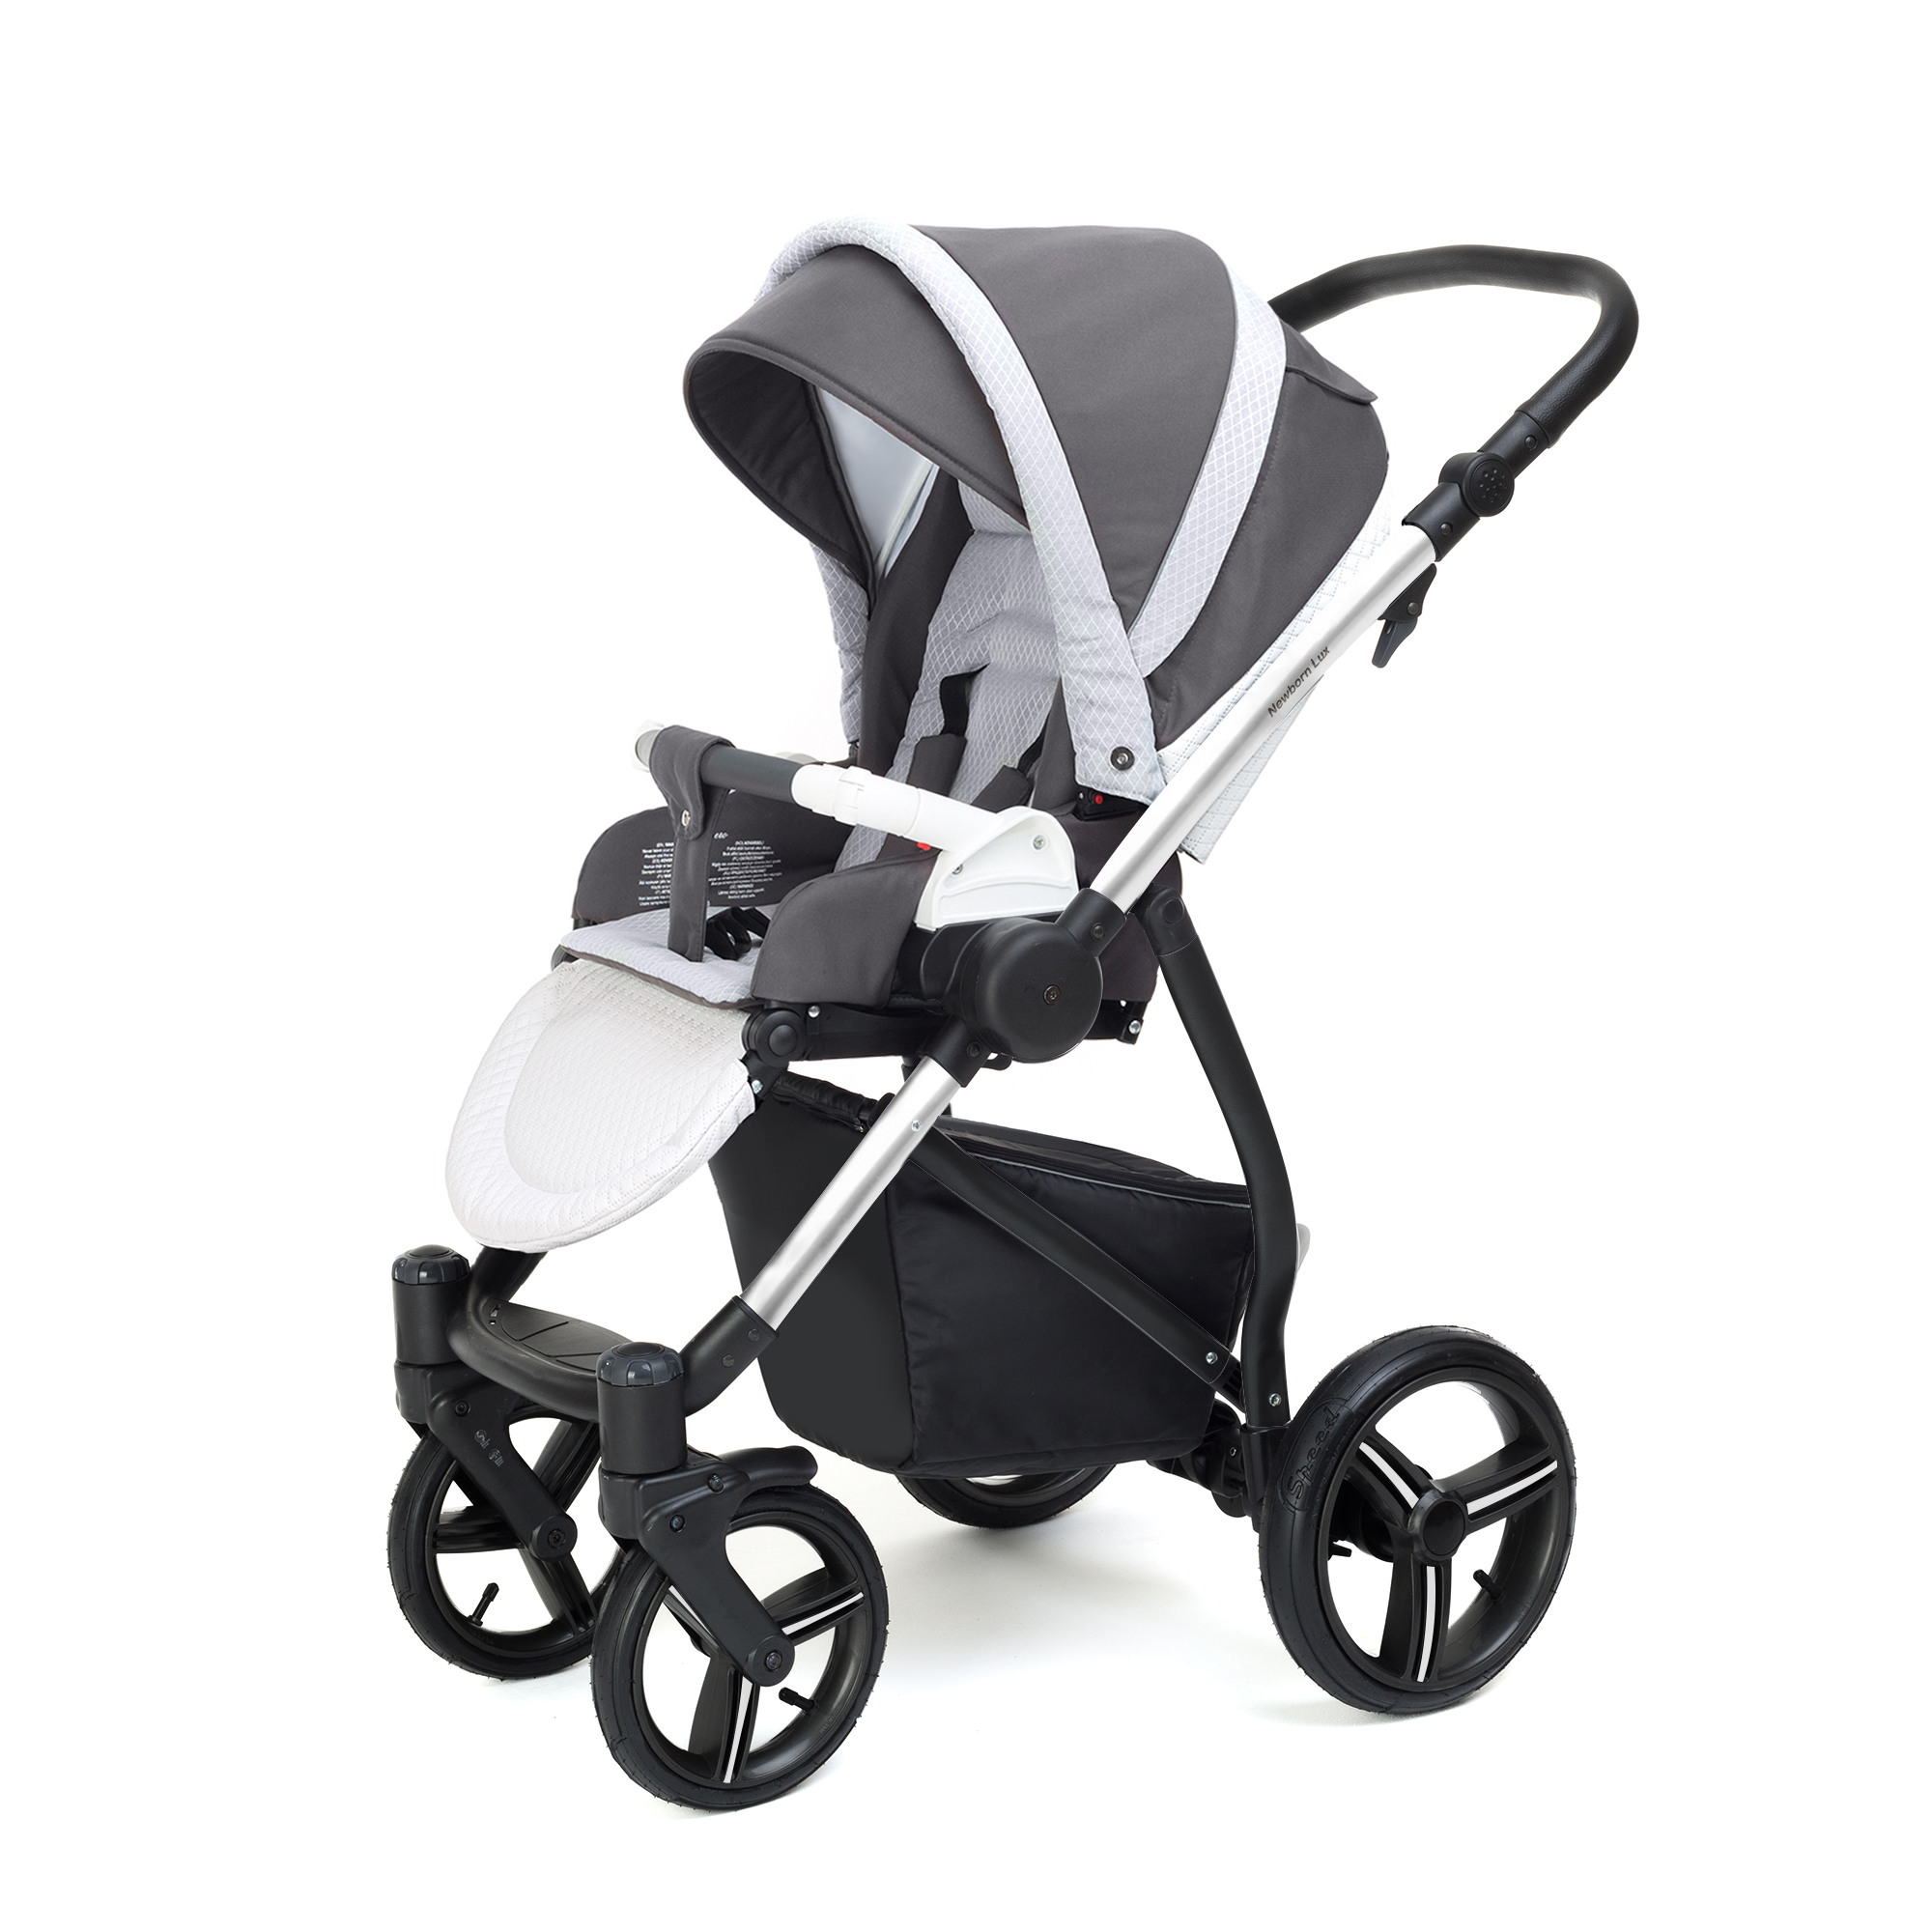 Прогулочная коляска Esspero Grand Newborn Lux (шасси Chrome) Royal Light Grey